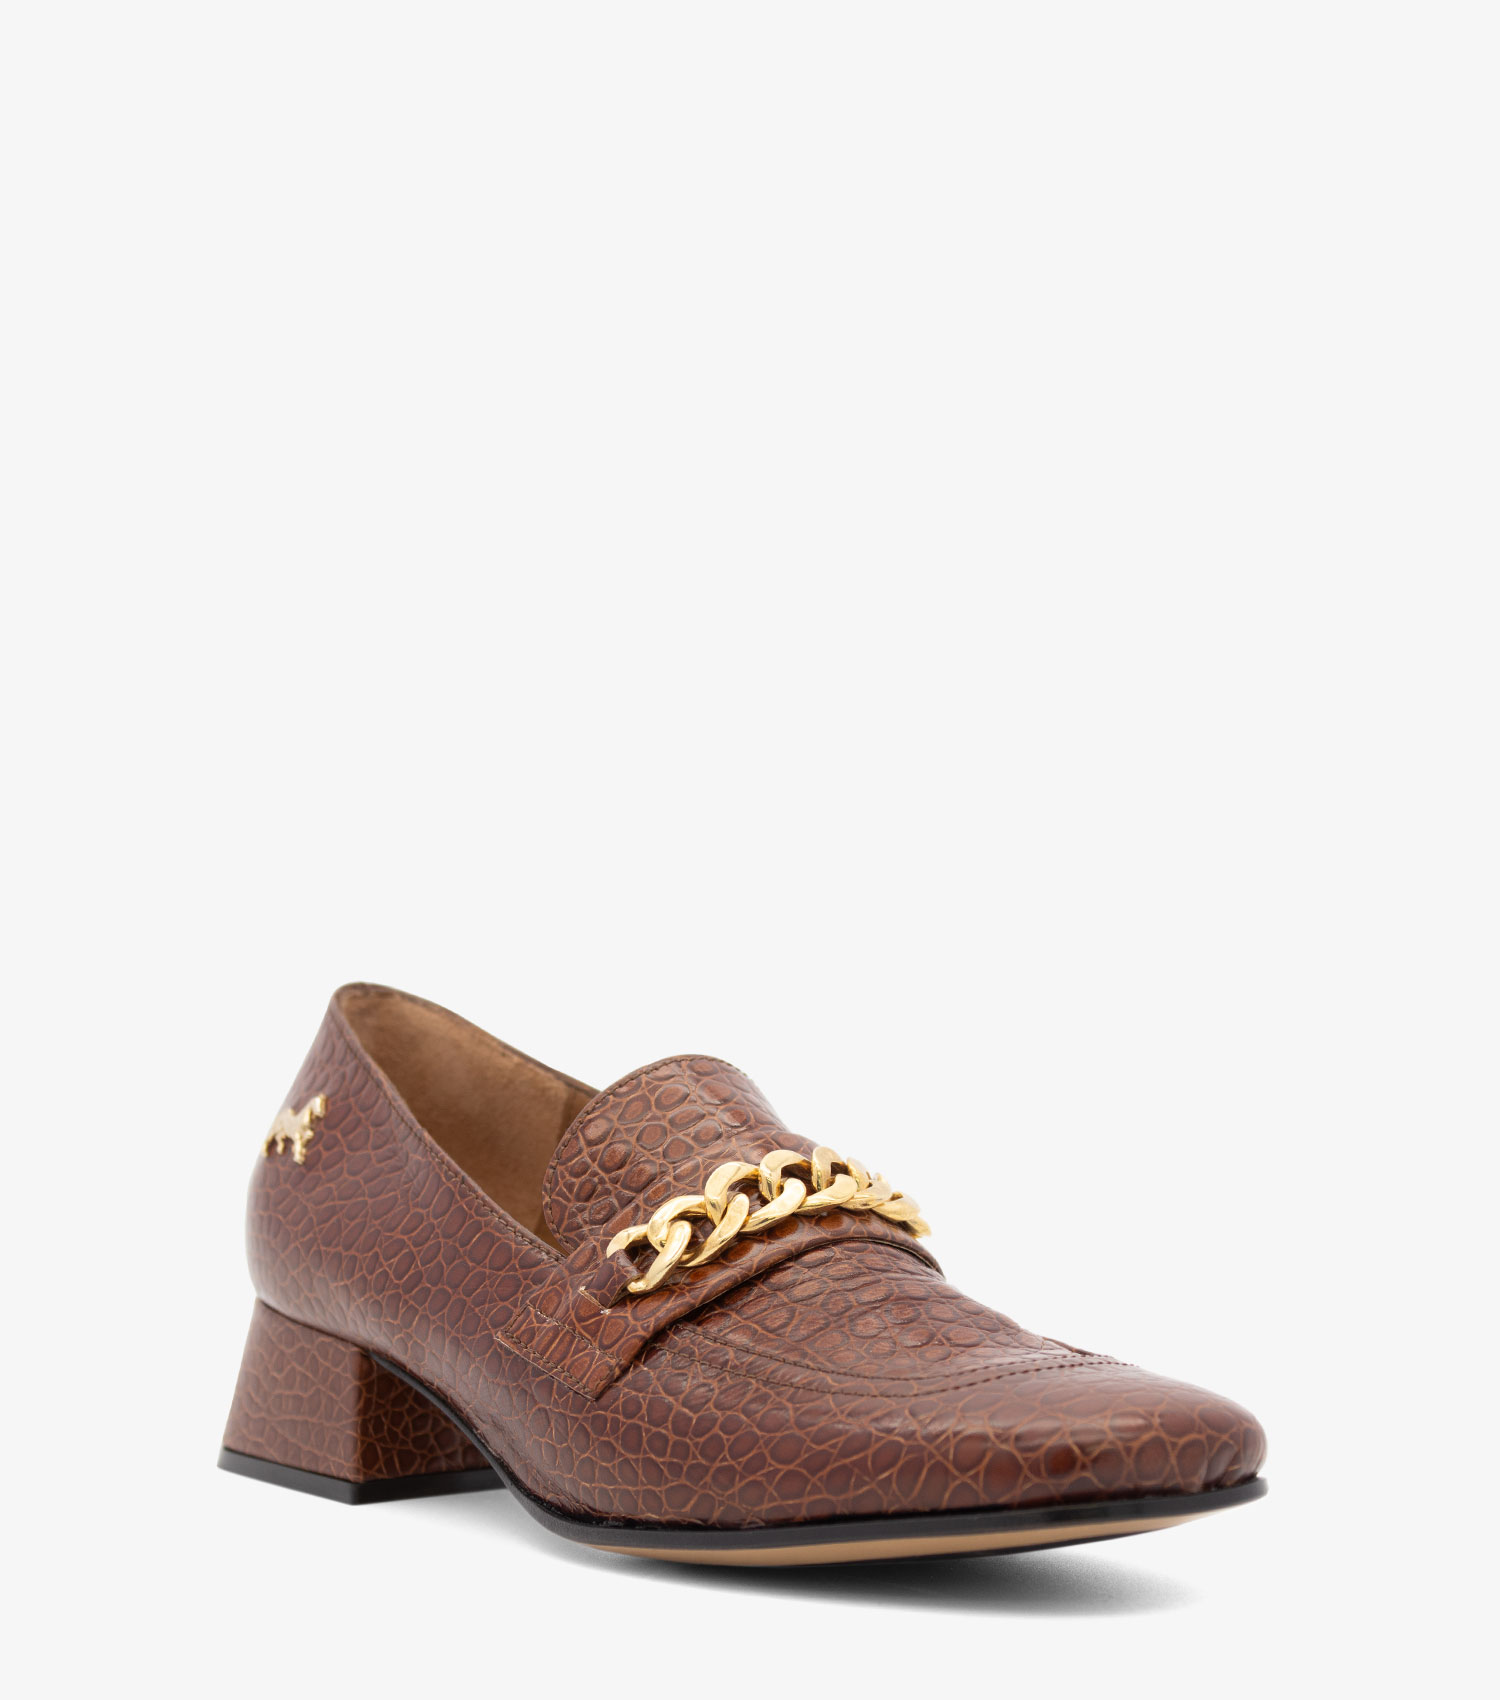 Another Skin Flat shoes